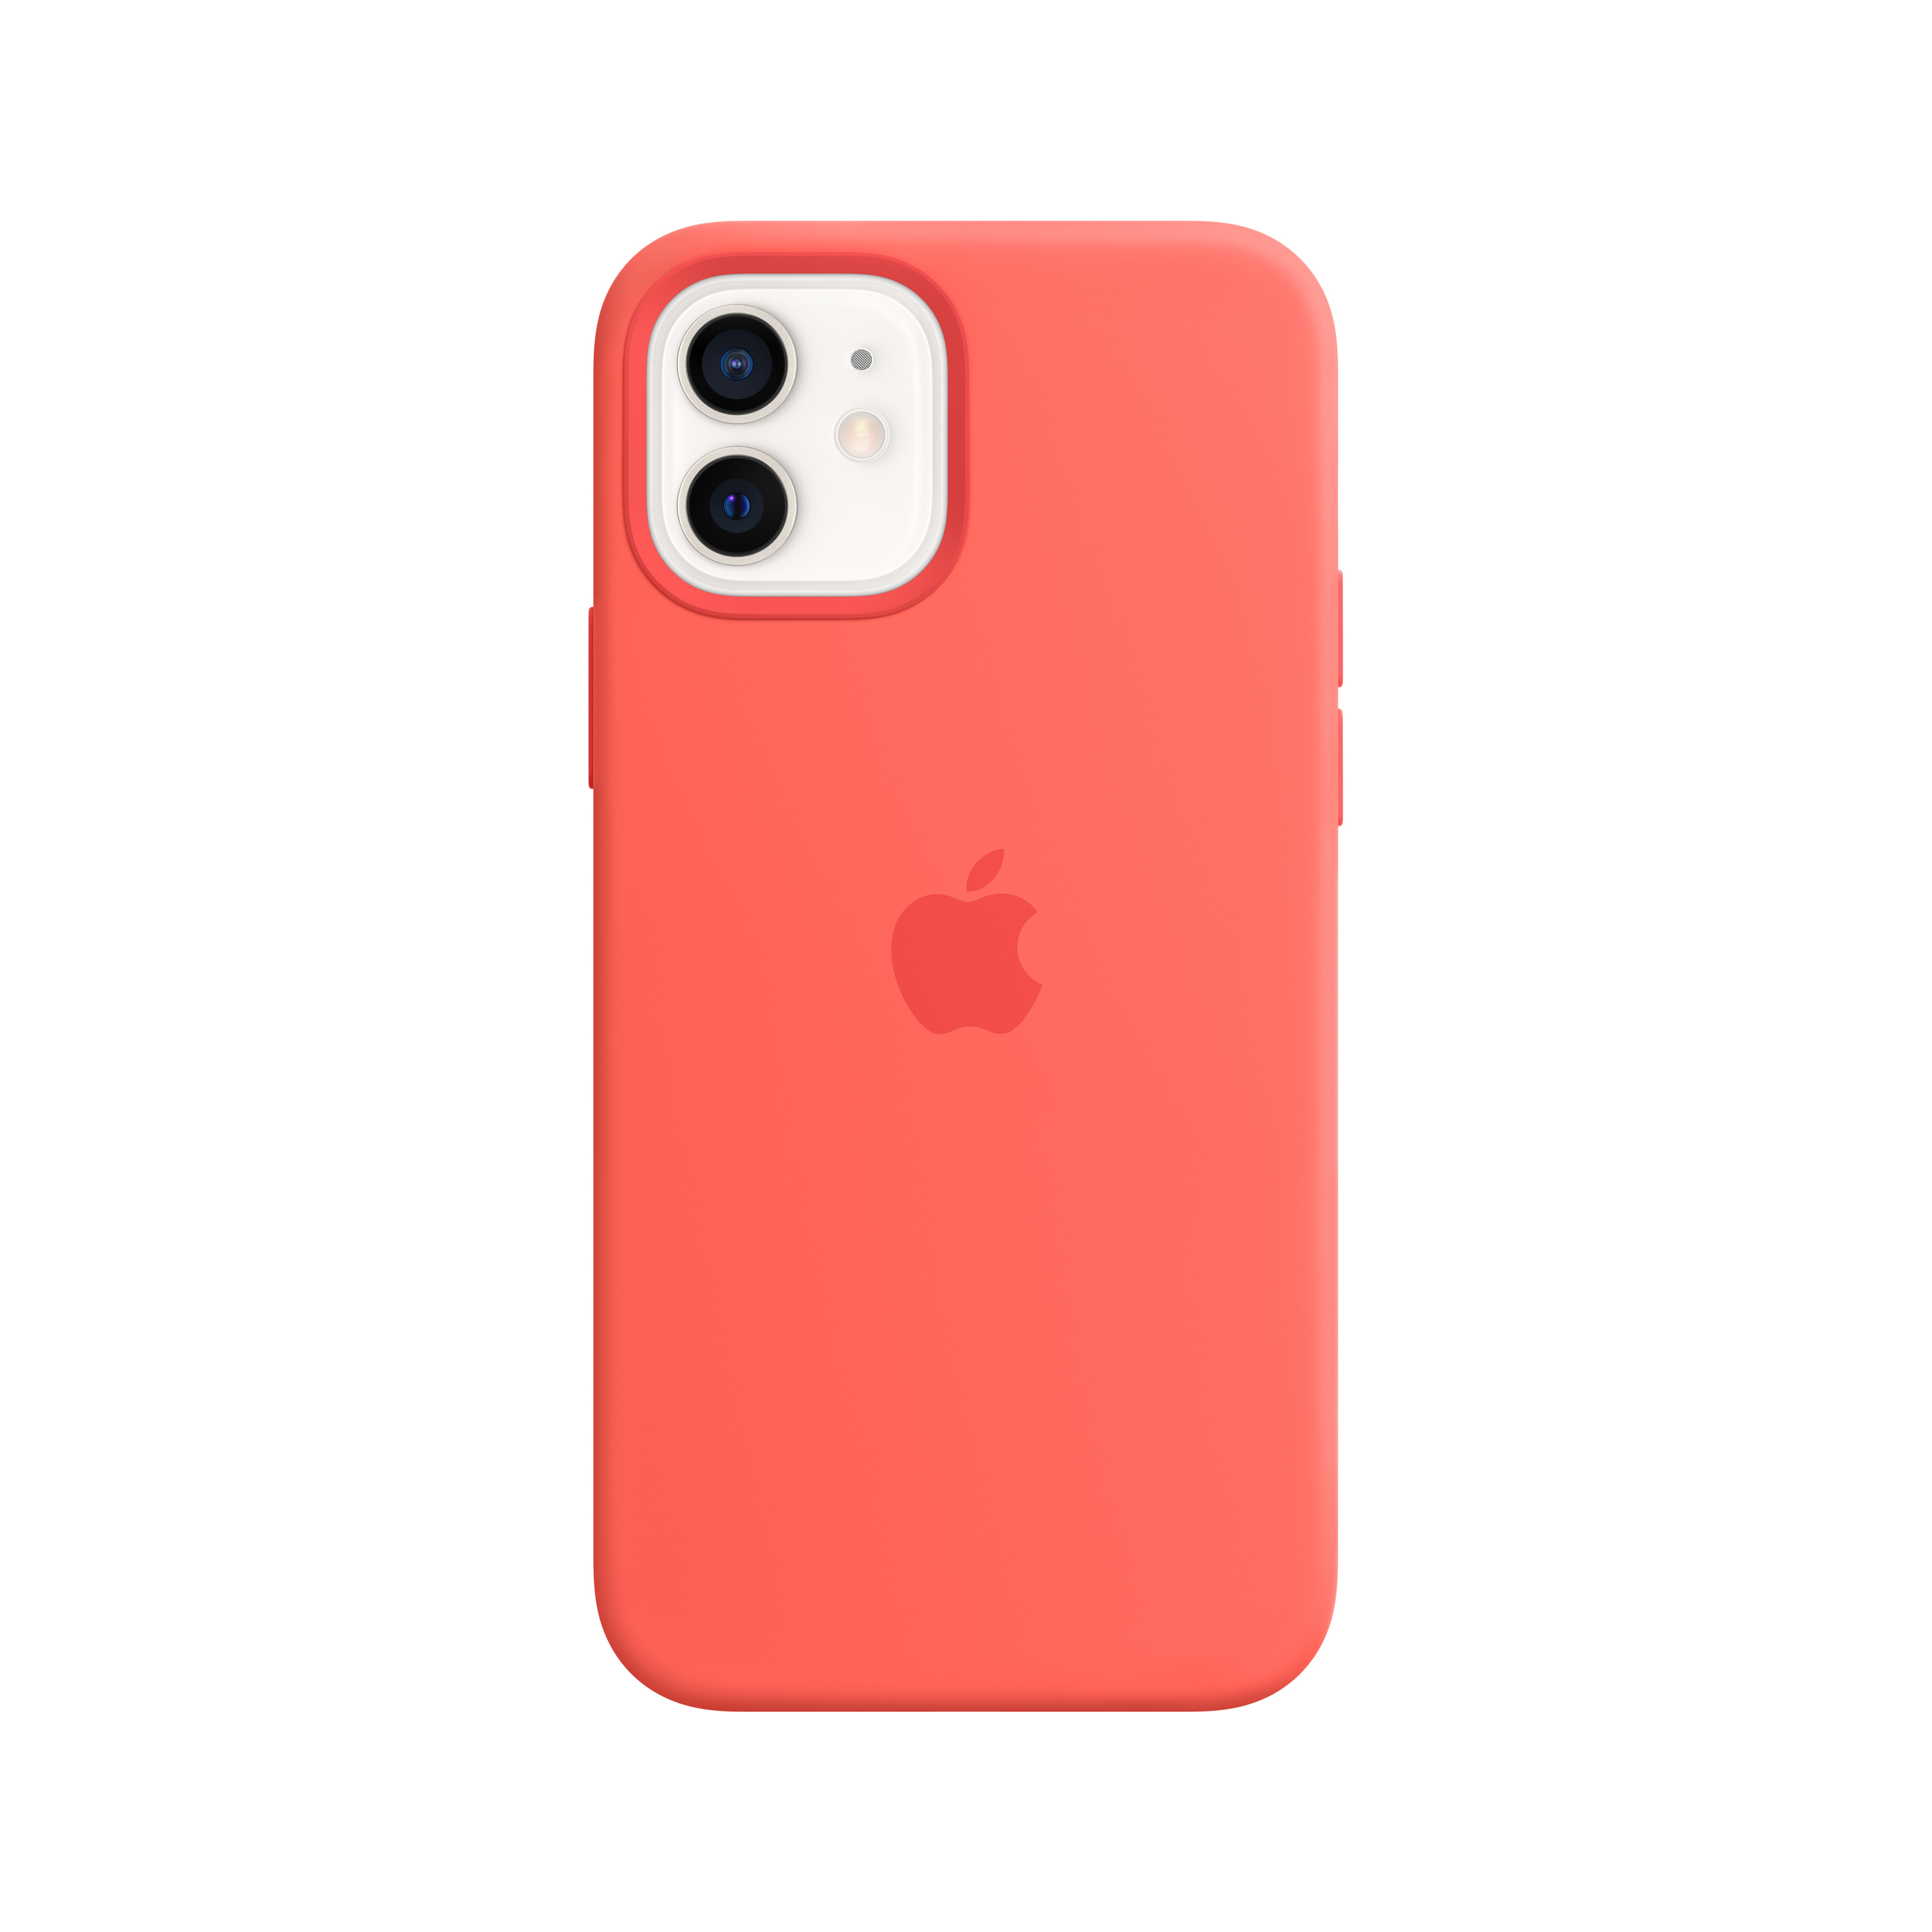 Apple - iPhone 12 | 12 Pro Silicone Case with MagSafe - Pink Citrus Mhl03zm/a